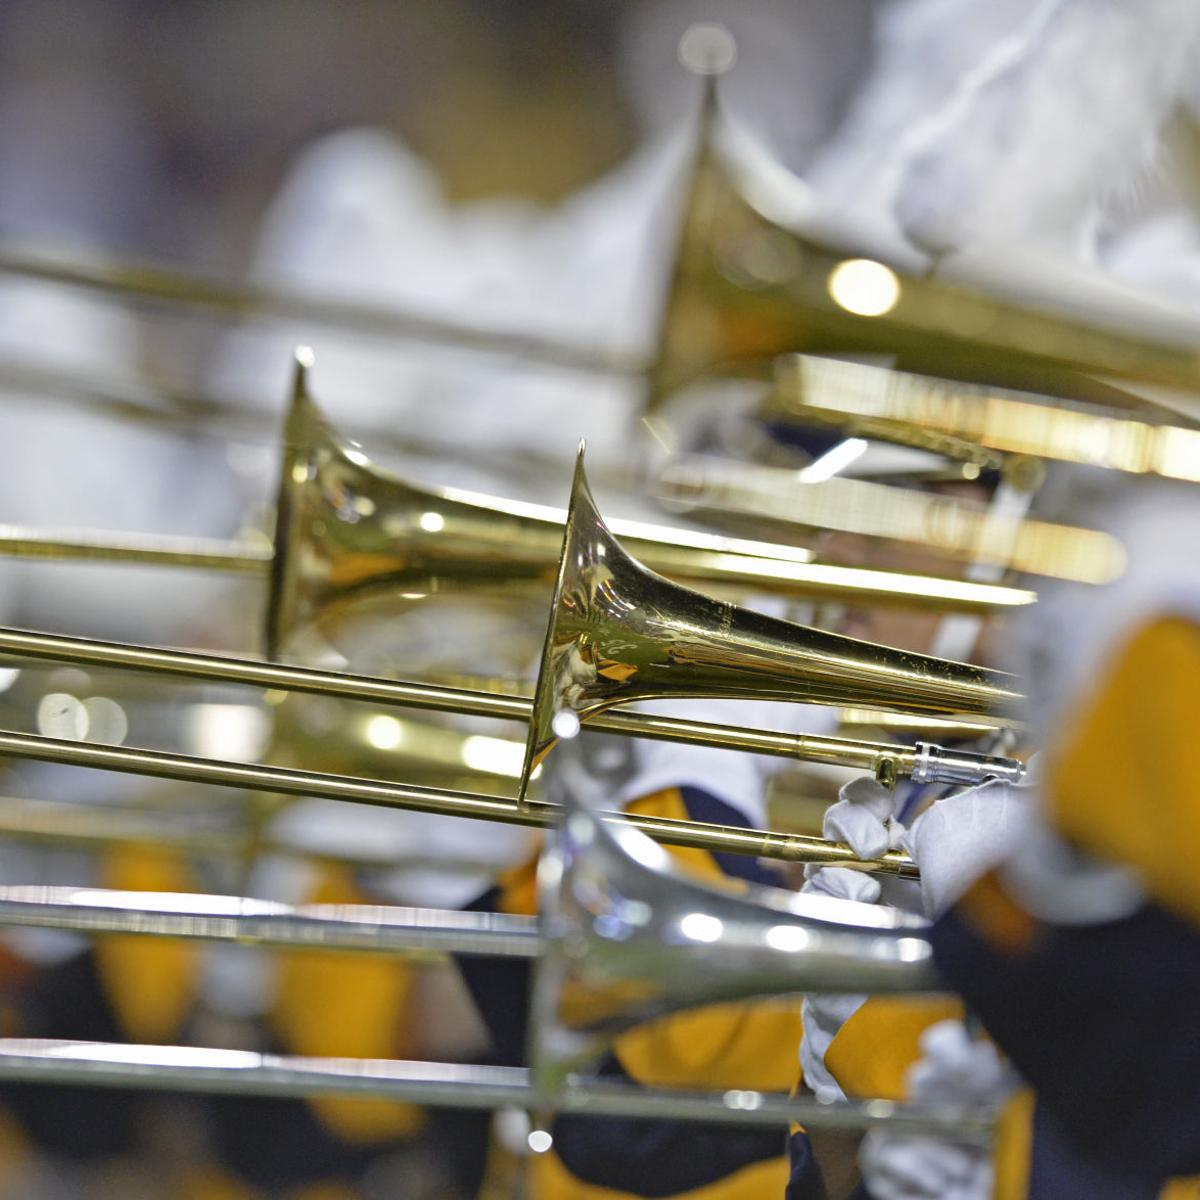 LSU marching band rewards fans with 'Neck' after game, but